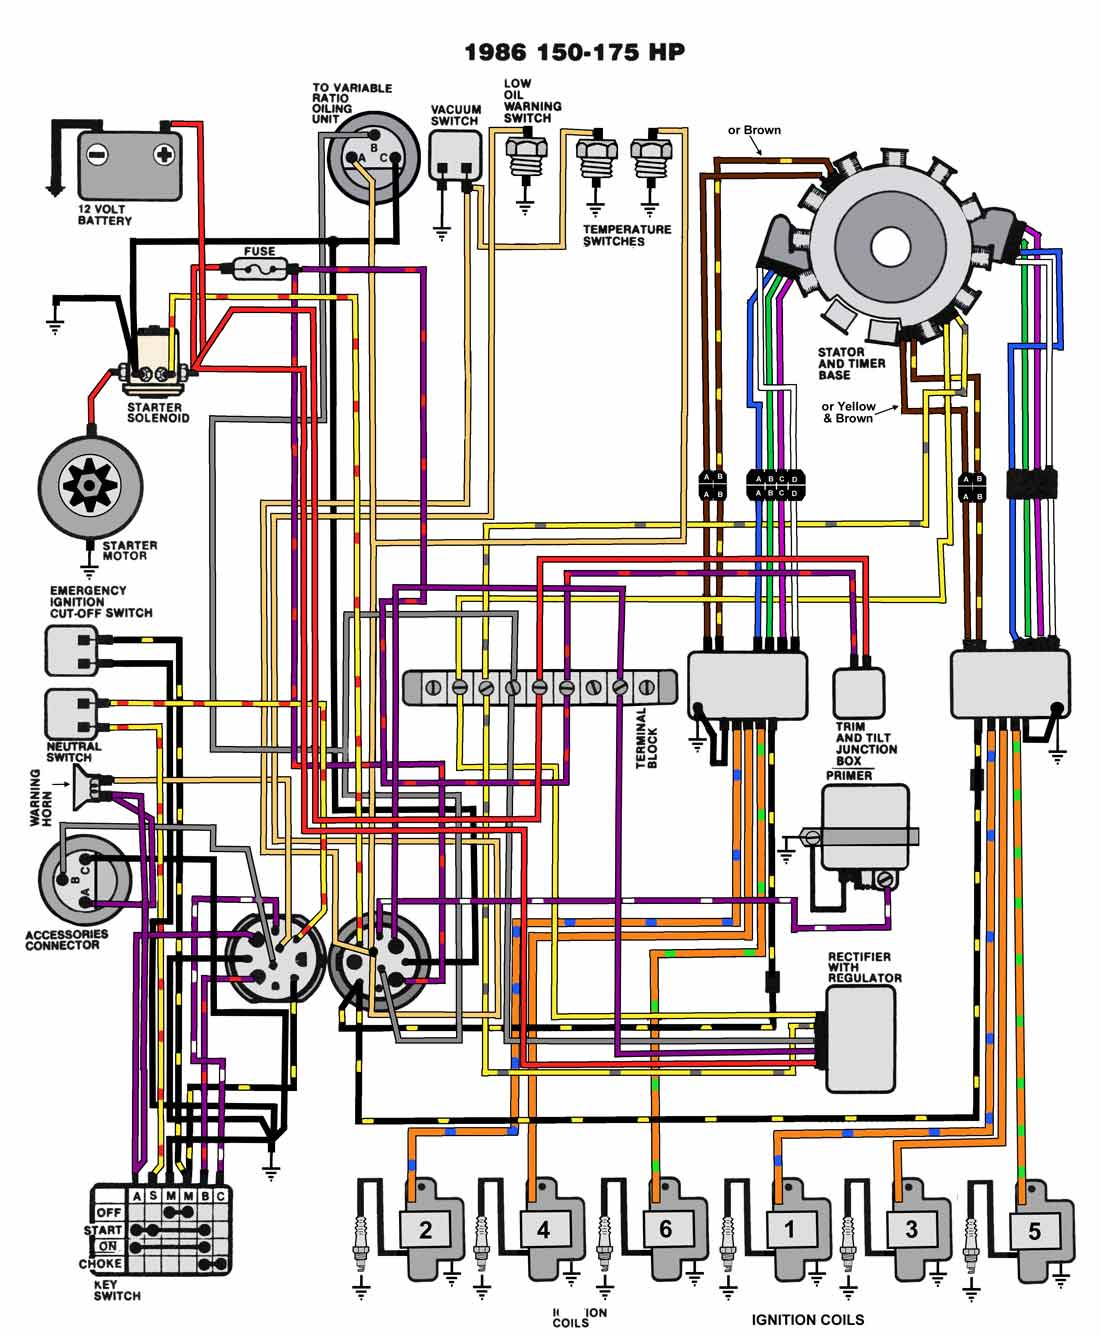 1986_150_175 mastertech marine evinrude johnson outboard wiring diagrams 85 Mercury Outboard Wiring Diagram at gsmportal.co